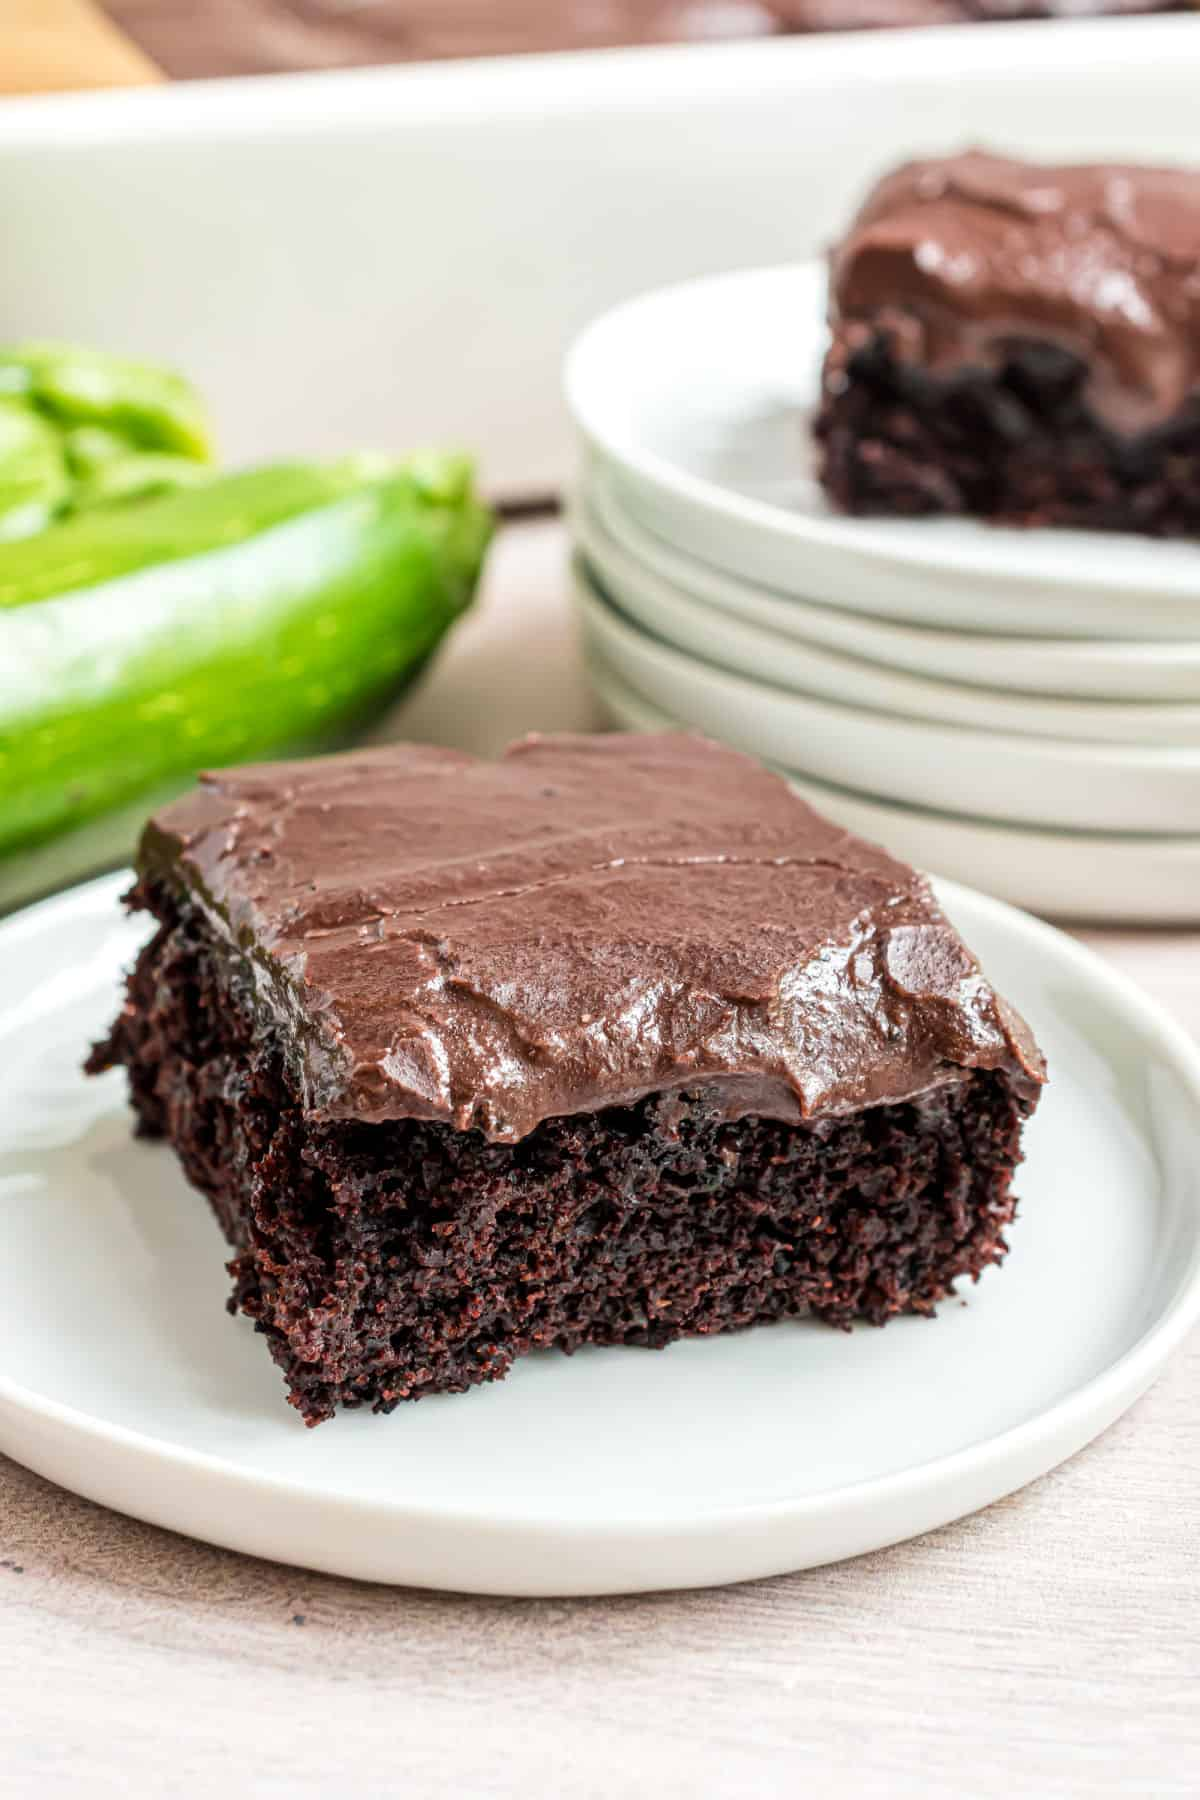 Slices of chocolate frosted zucchini brownies on white dessert plates.